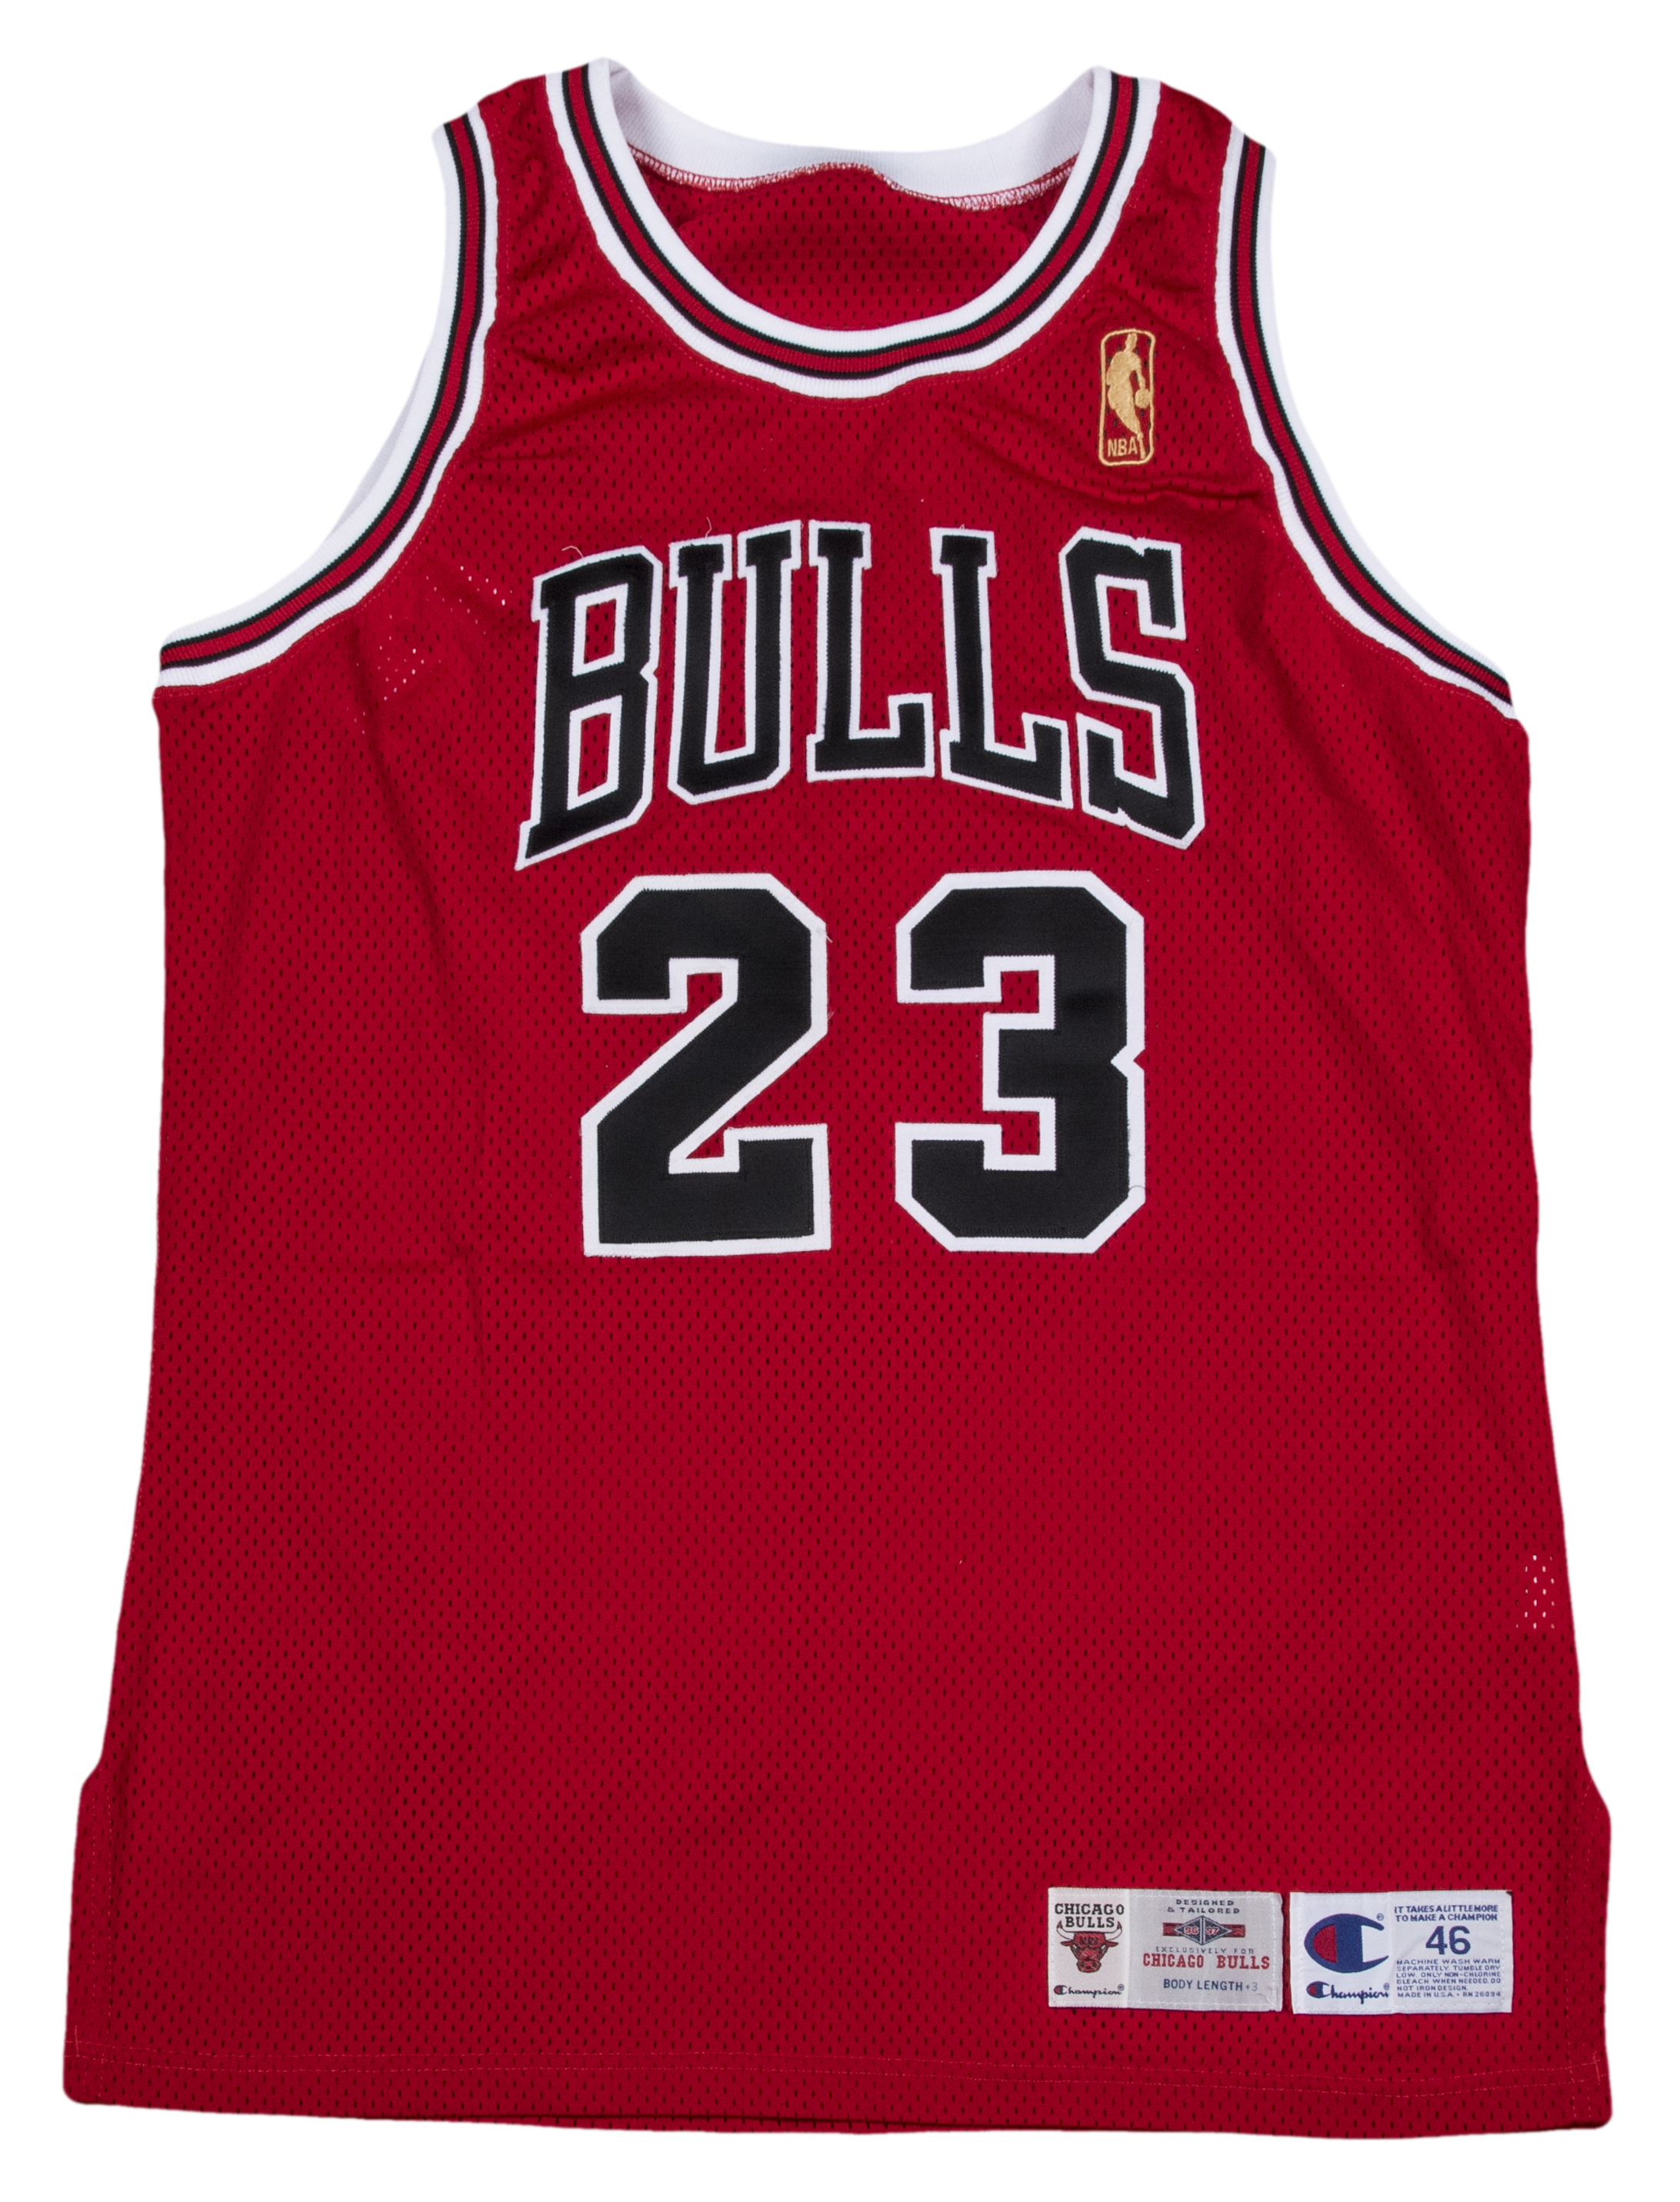 8e9e1fcca5113c 1996-97 Michael Jordan Game Used and Signed Inscribed Chicago Bulls Road  Jersey (Bulls LOA